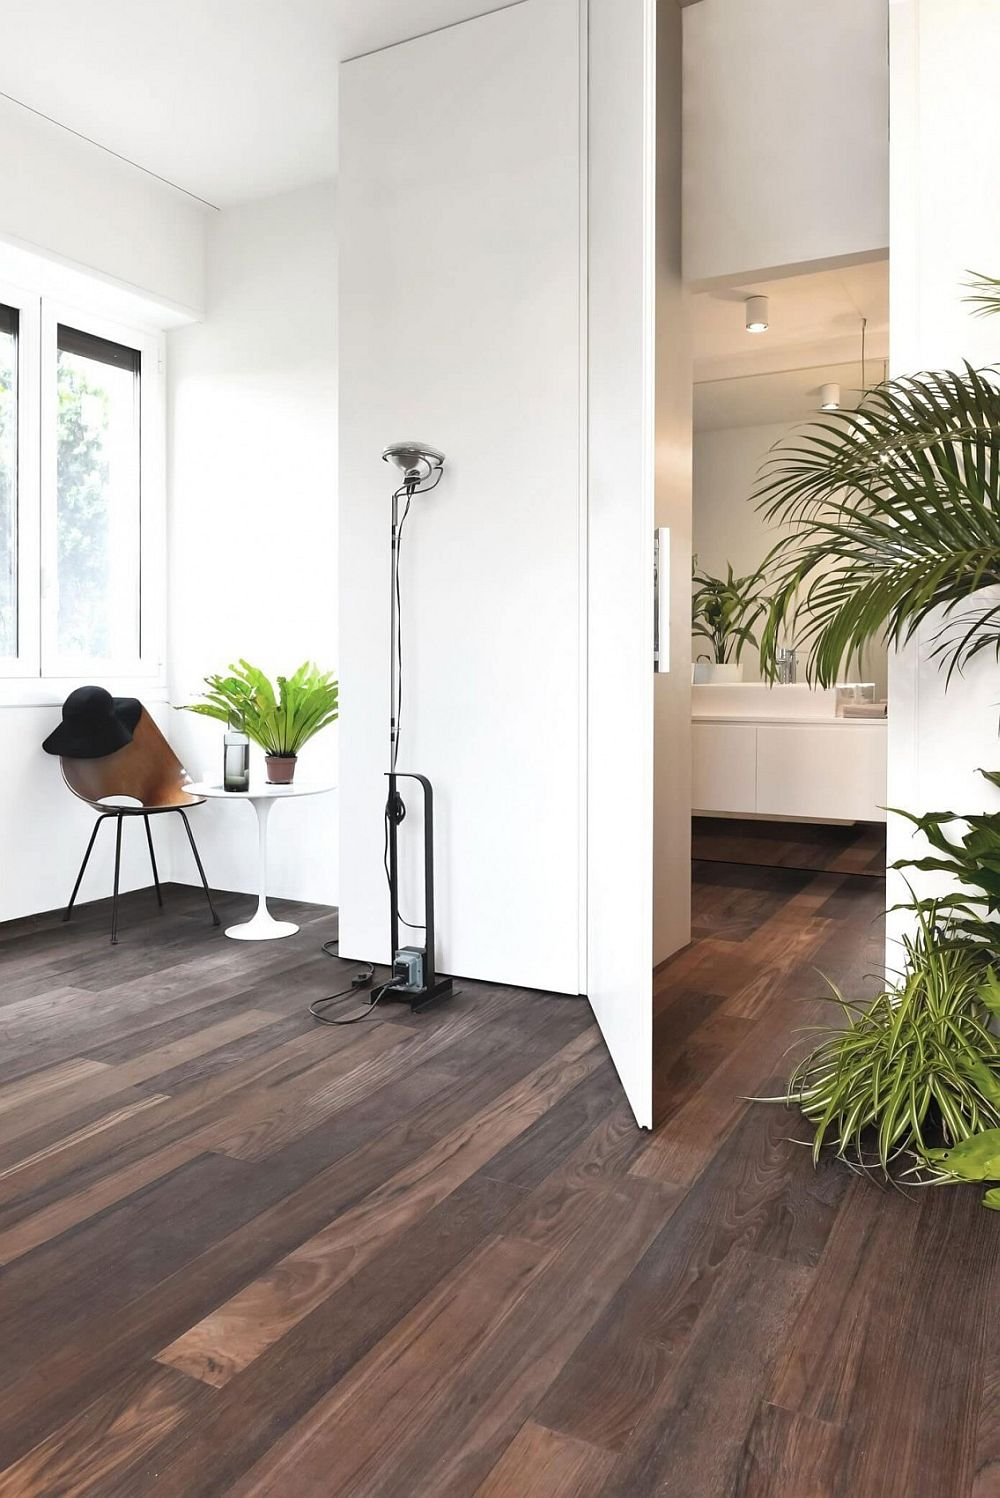 Wooden floors add textural beauty to the interior